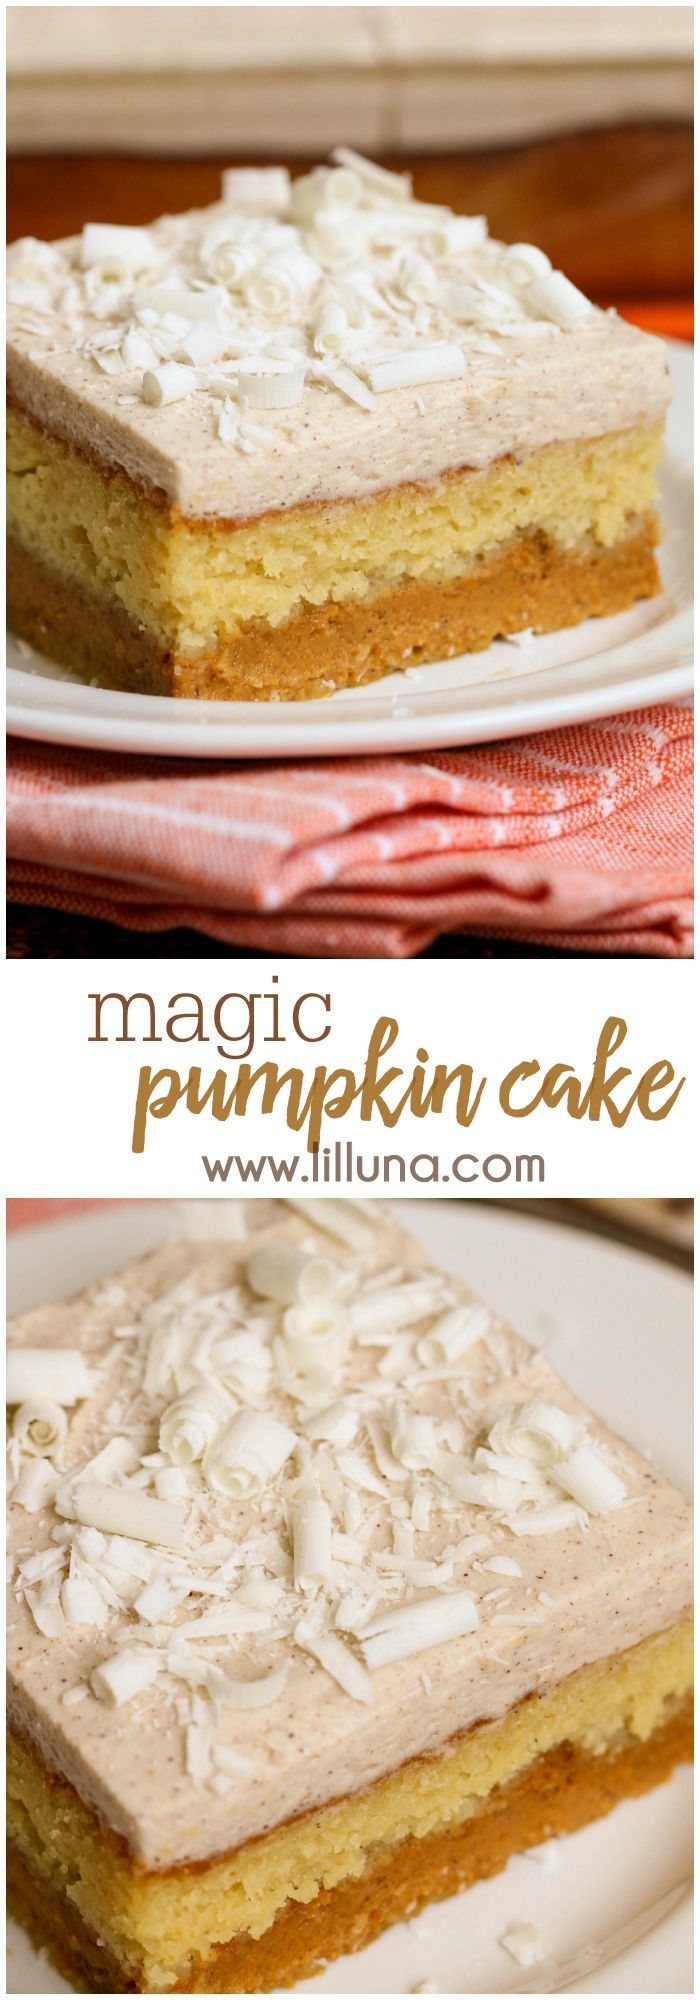 Magic Pumpkin Cake - a 3-layered dessert recipe with so much flavor and all topped off with white chocolate curls!!